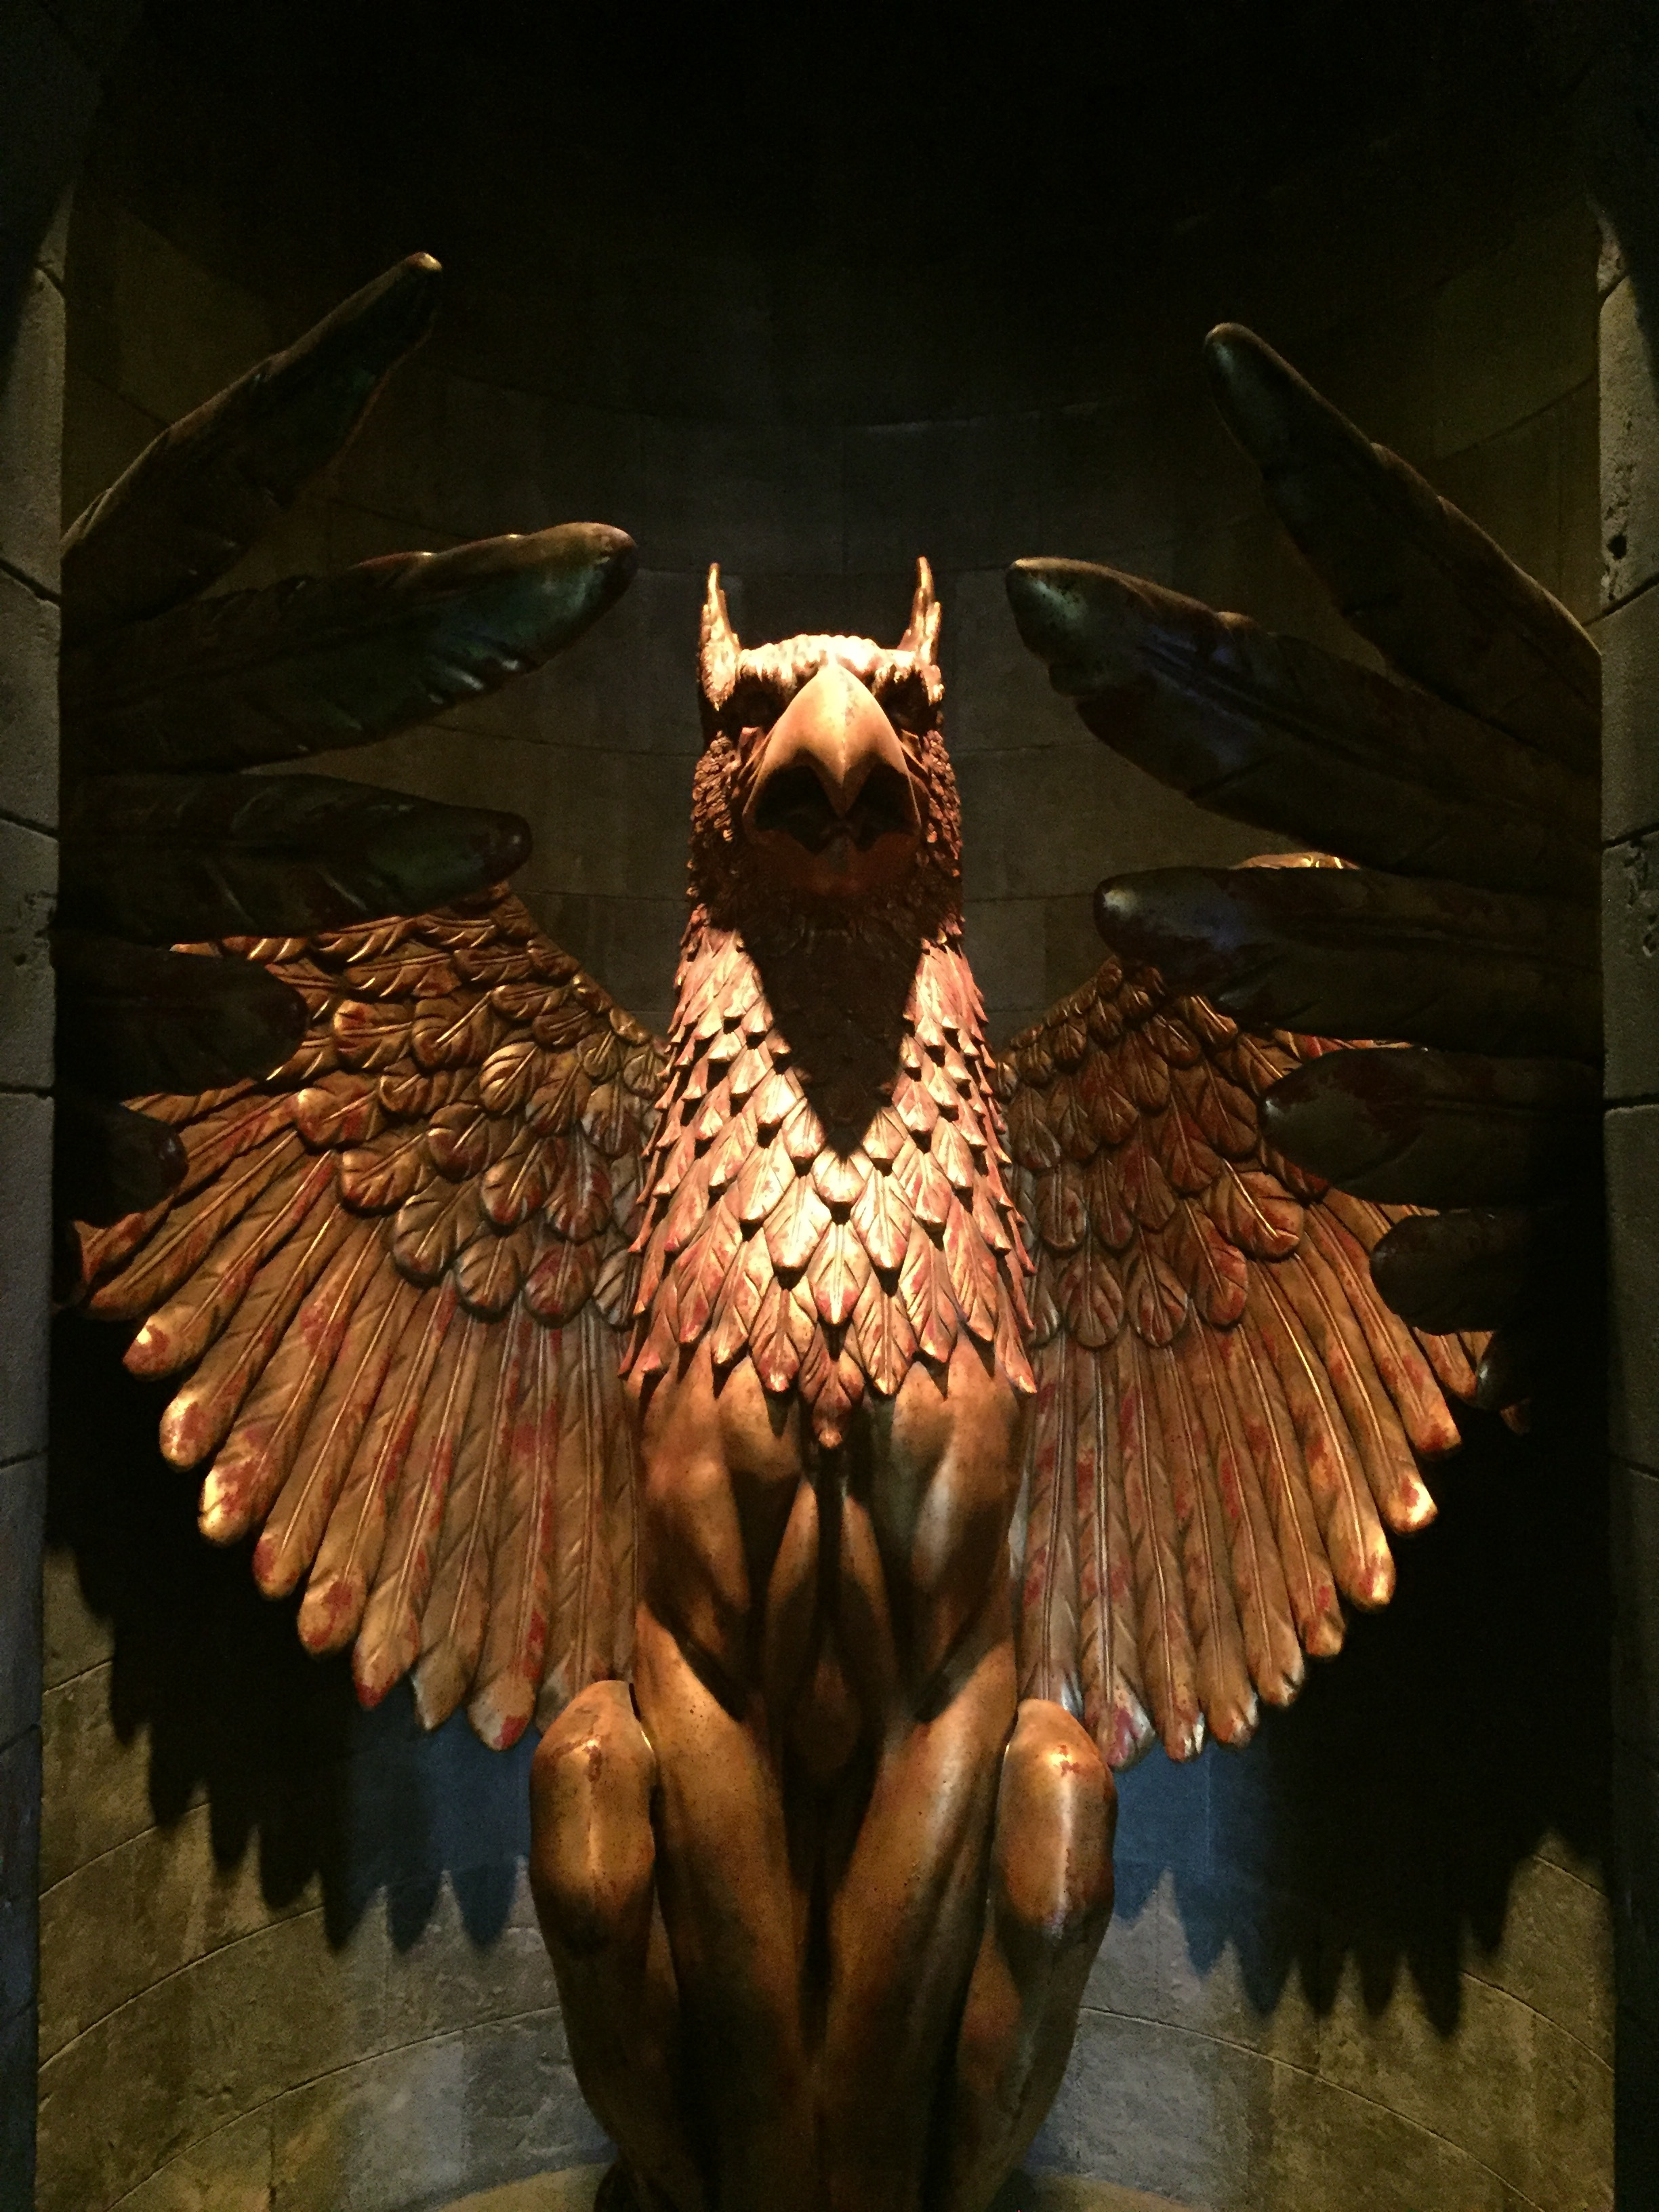 [image description: large, gold phoenix statue surrounded by a circular wall. It's the famed entrance to Dumbledore's office. The phoenix's wings are curved around to mirror the curve of the wall and the bird stares straight ahead, beak slightly open.]